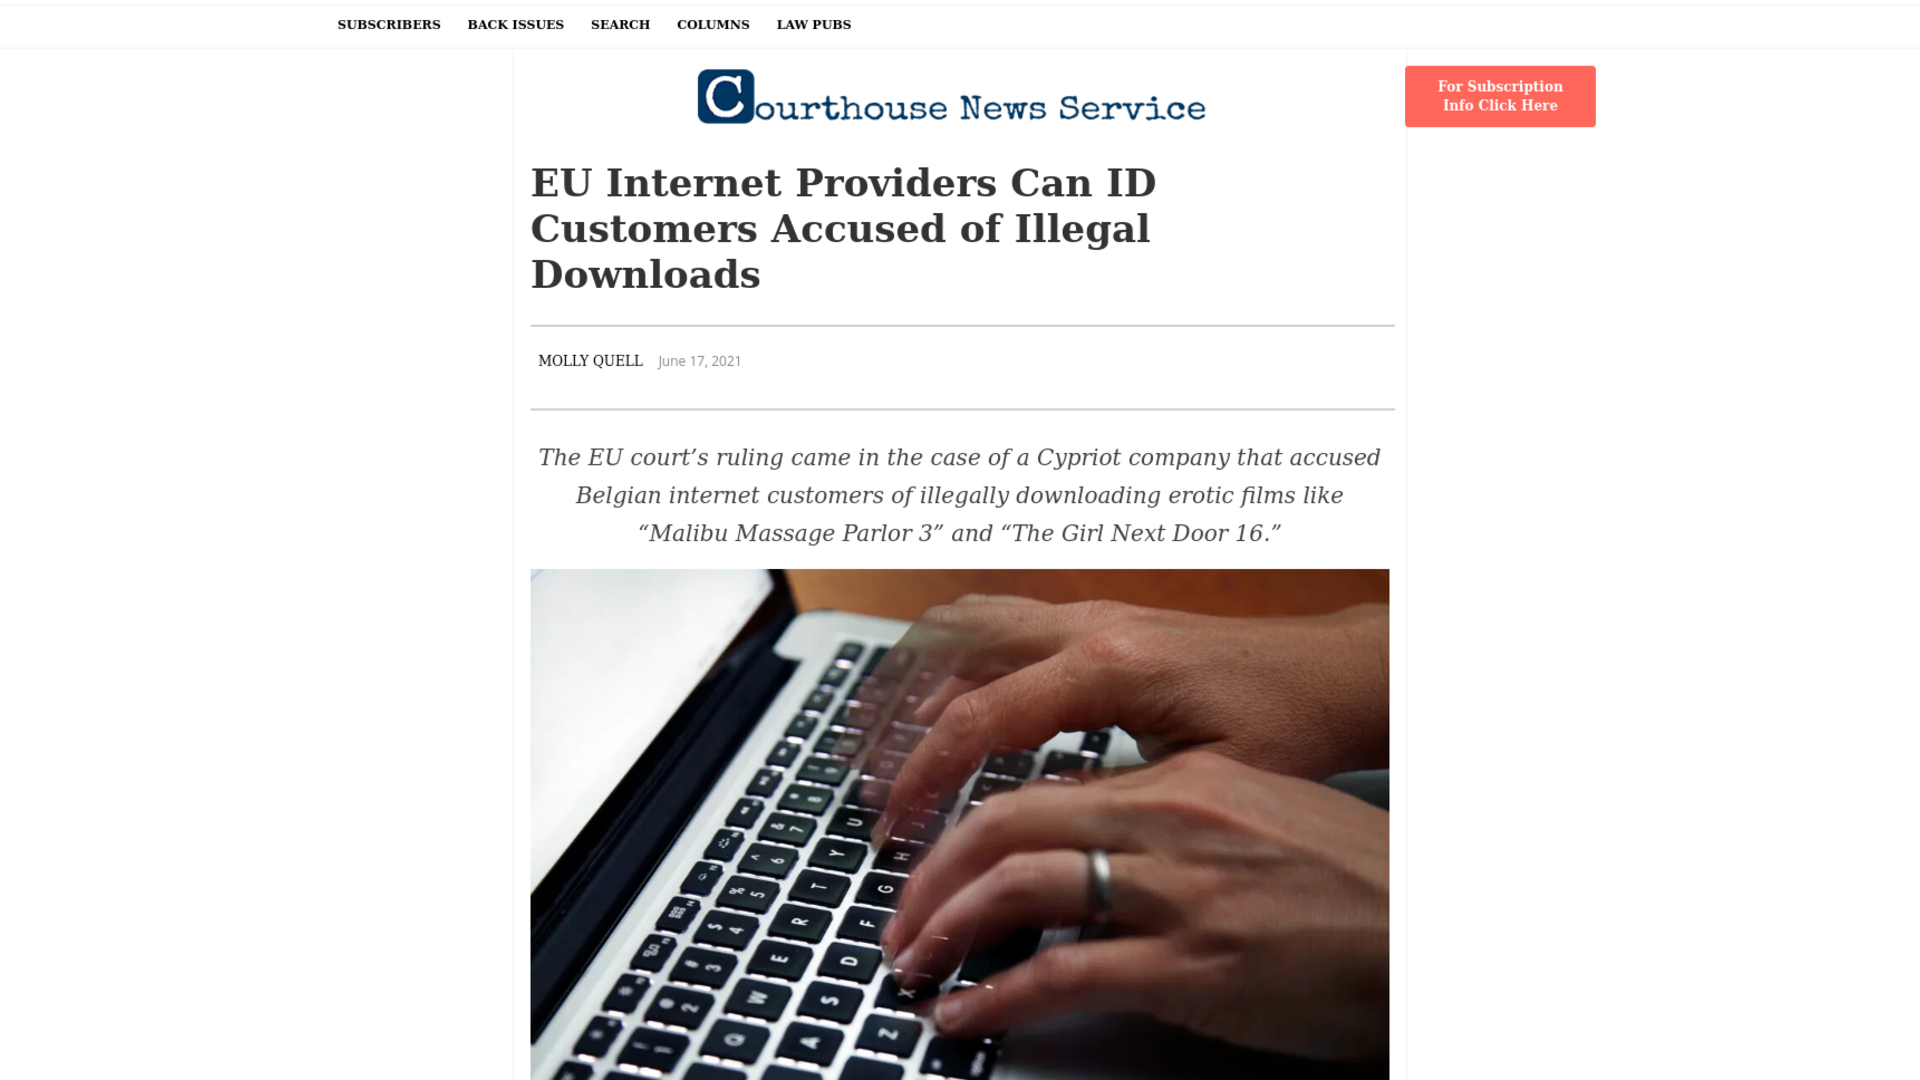 Fairness Rocks News EU Internet Providers Can ID Customers Accused of Illegal Downloads